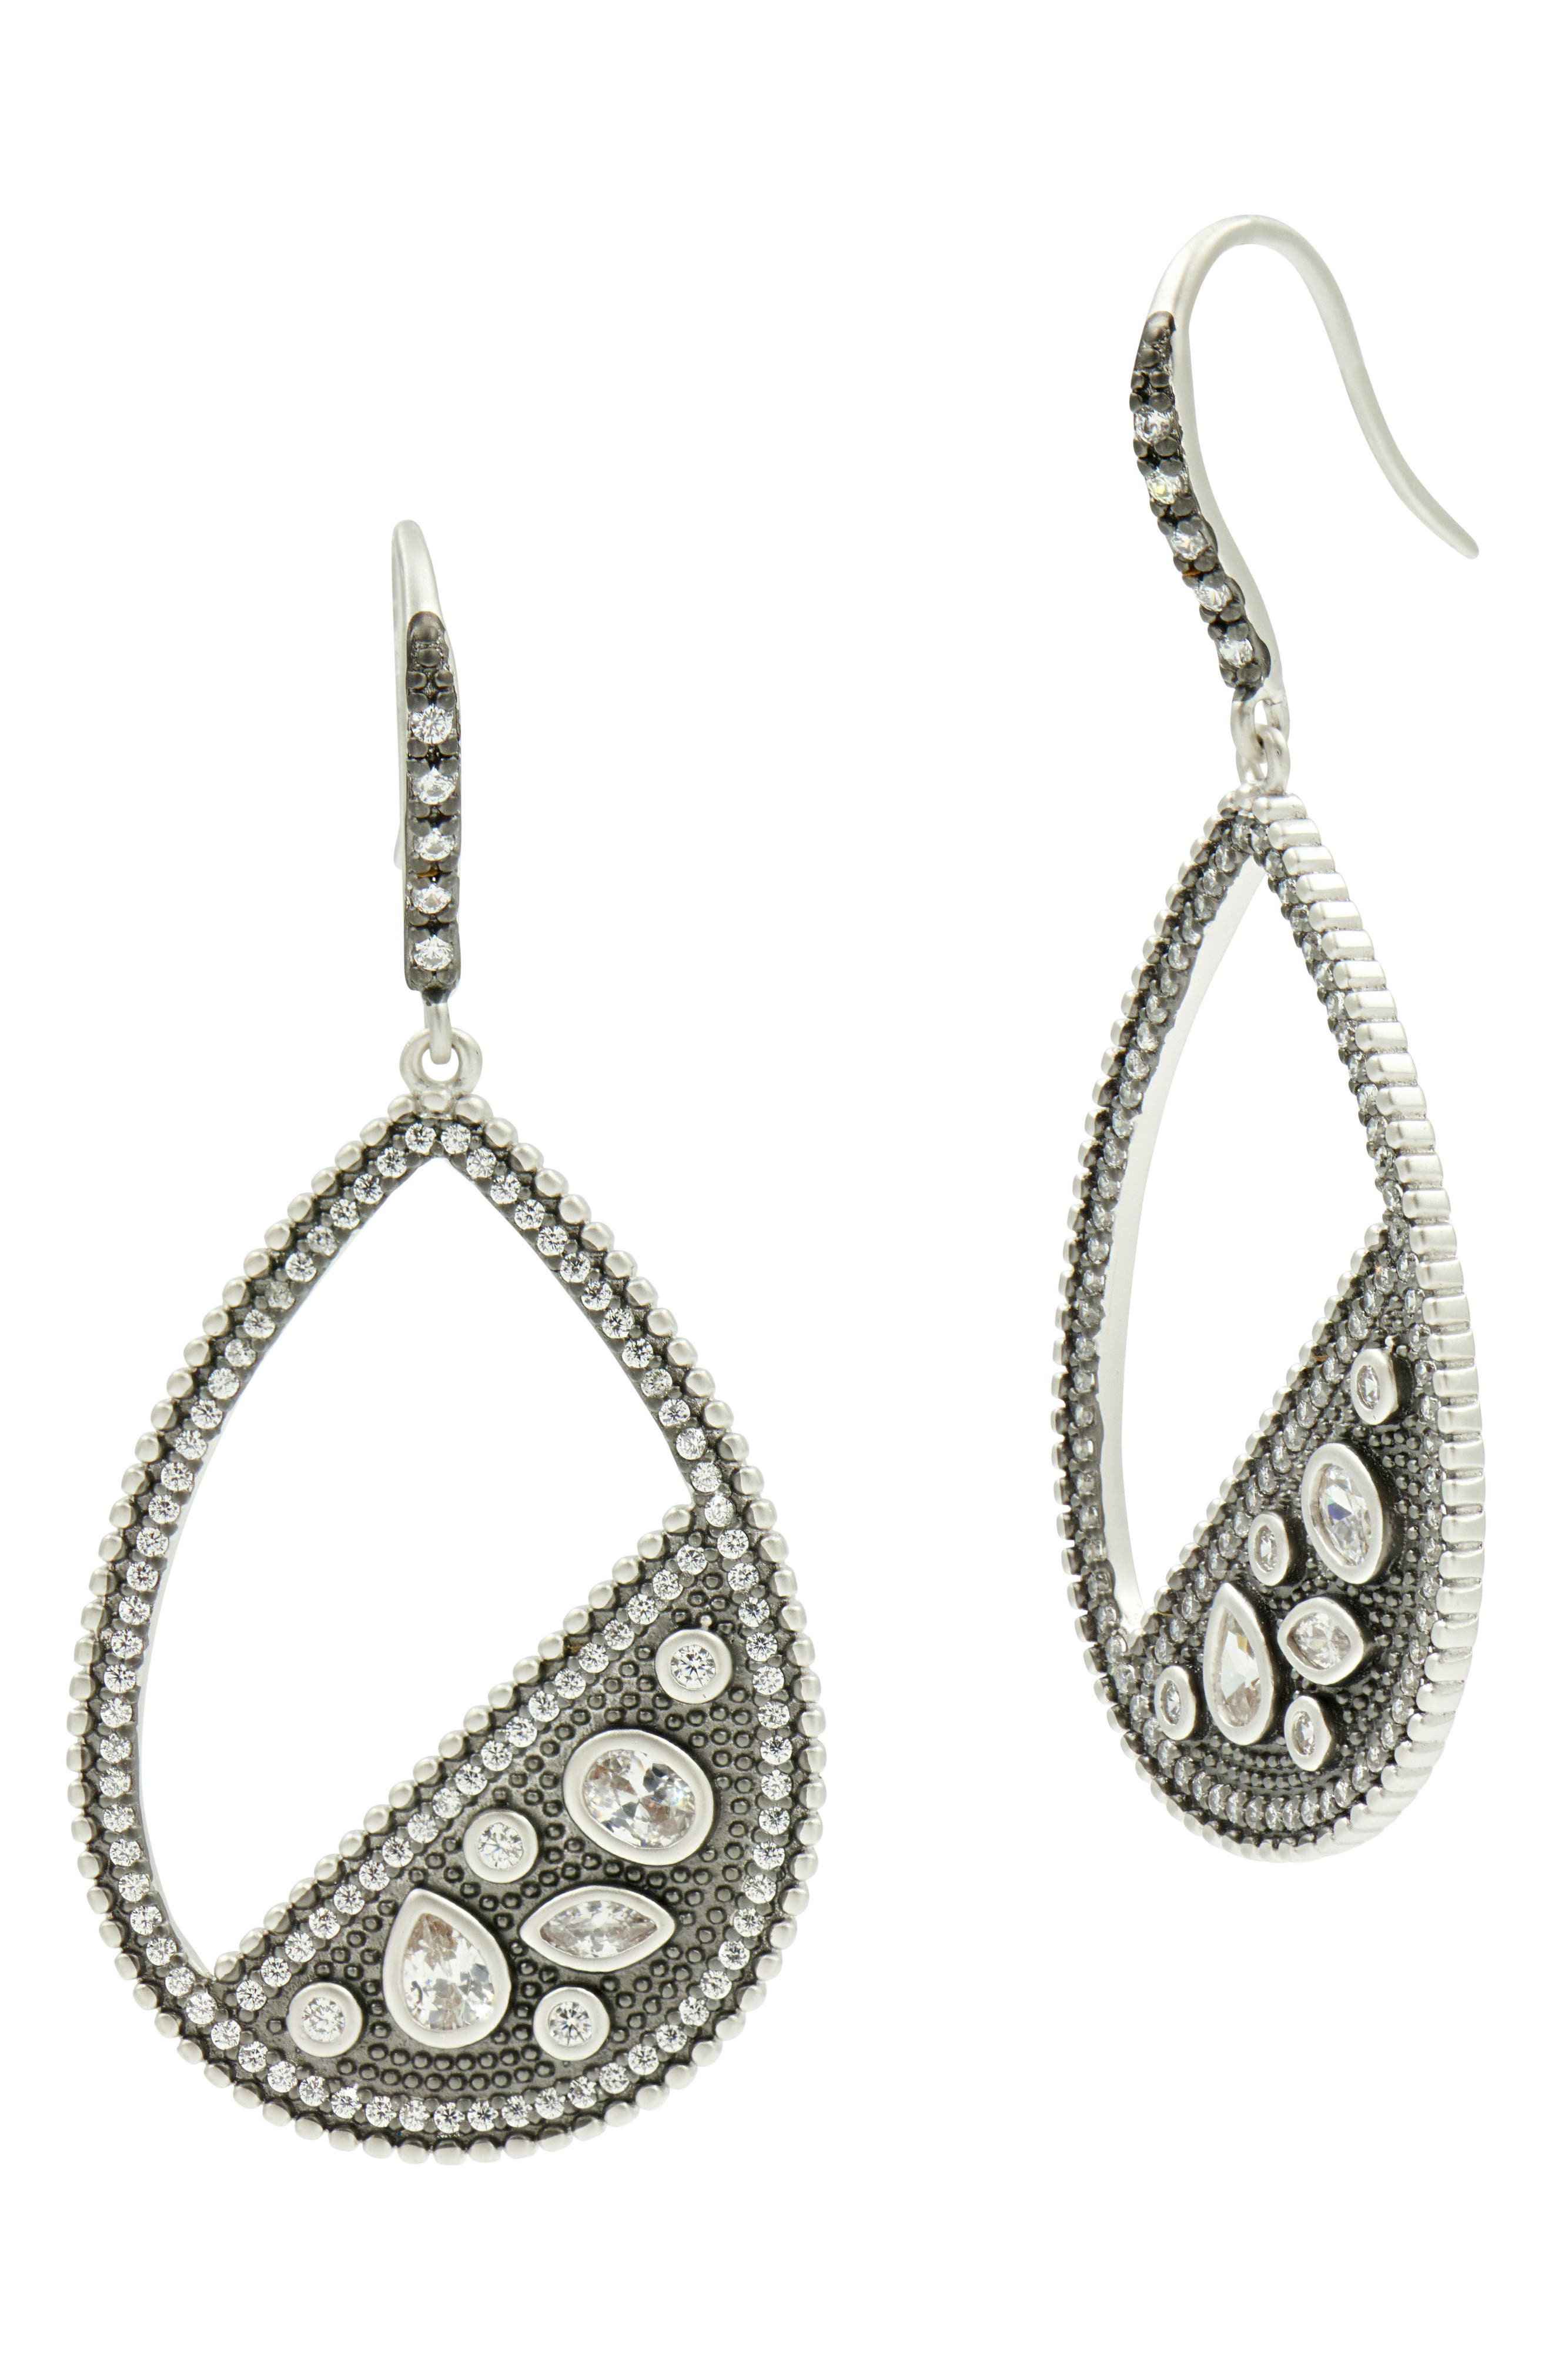 Industrial Finish Pavé Open Teardrop Earrings,                             Main thumbnail 1, color,                             Silver/ Black Rhodium